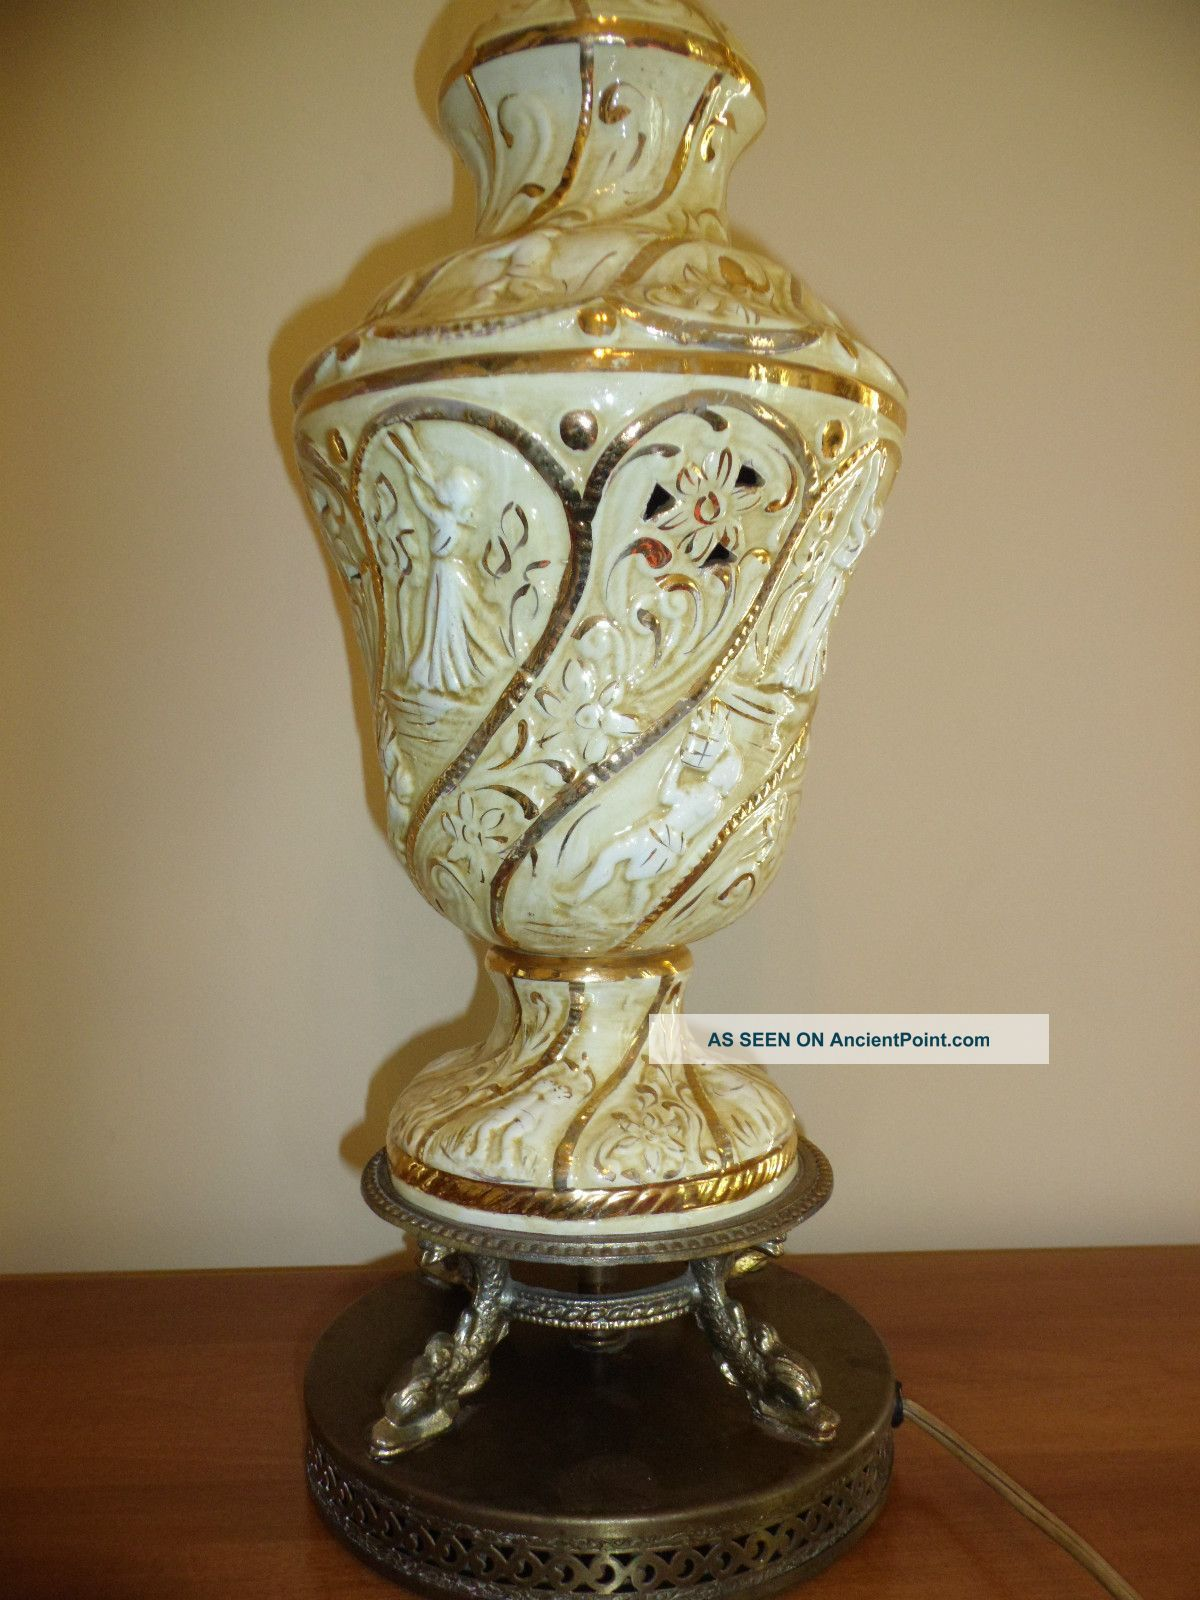 Capodimonte Porcelain Table Lamp : Vintage capodimonte figural table lamp gold white